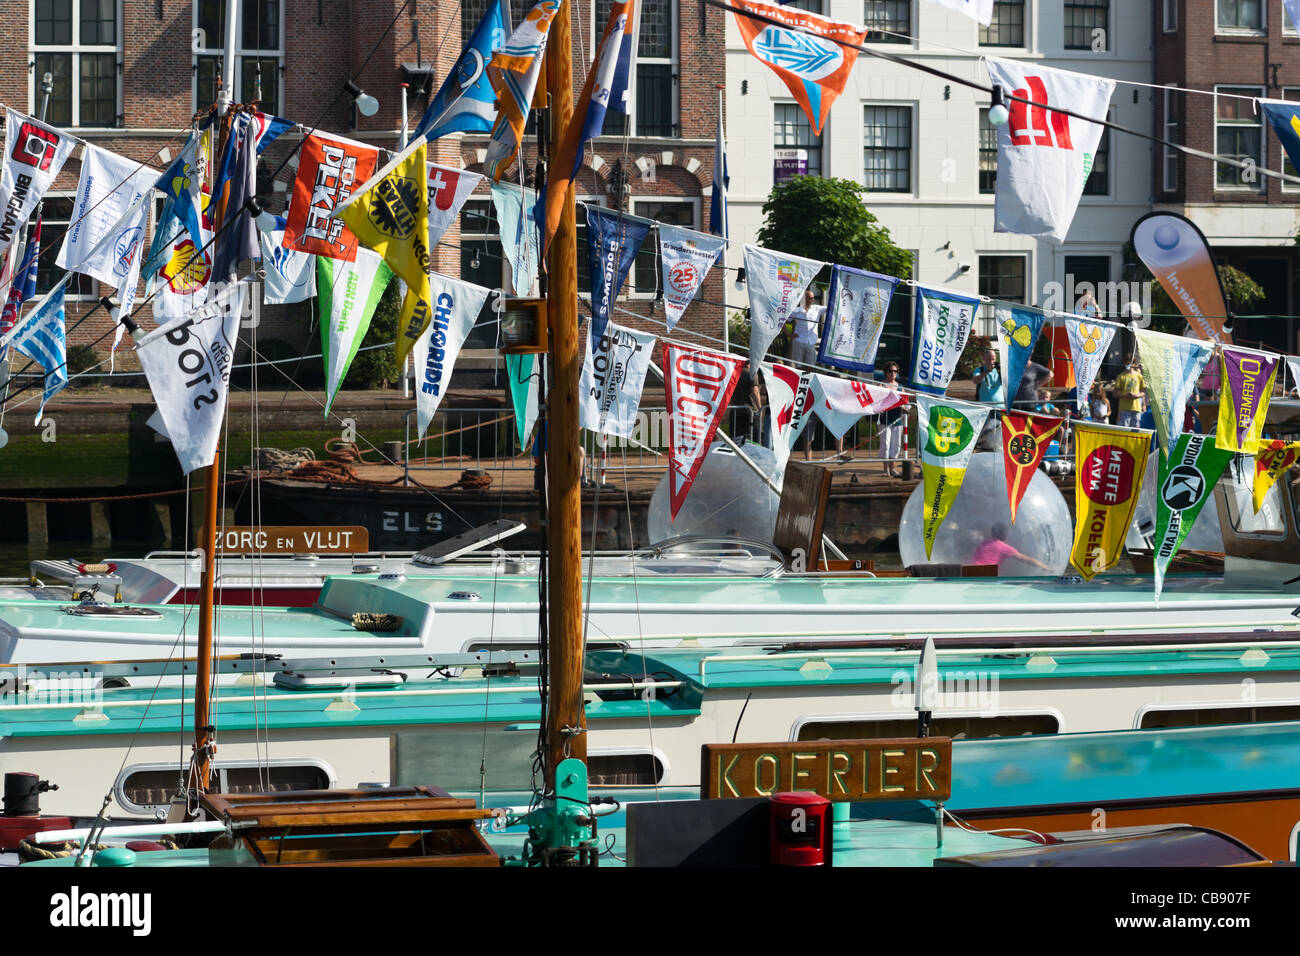 Ship decks and flags in Maassluis during the Furieade in 2011 - Stock Image